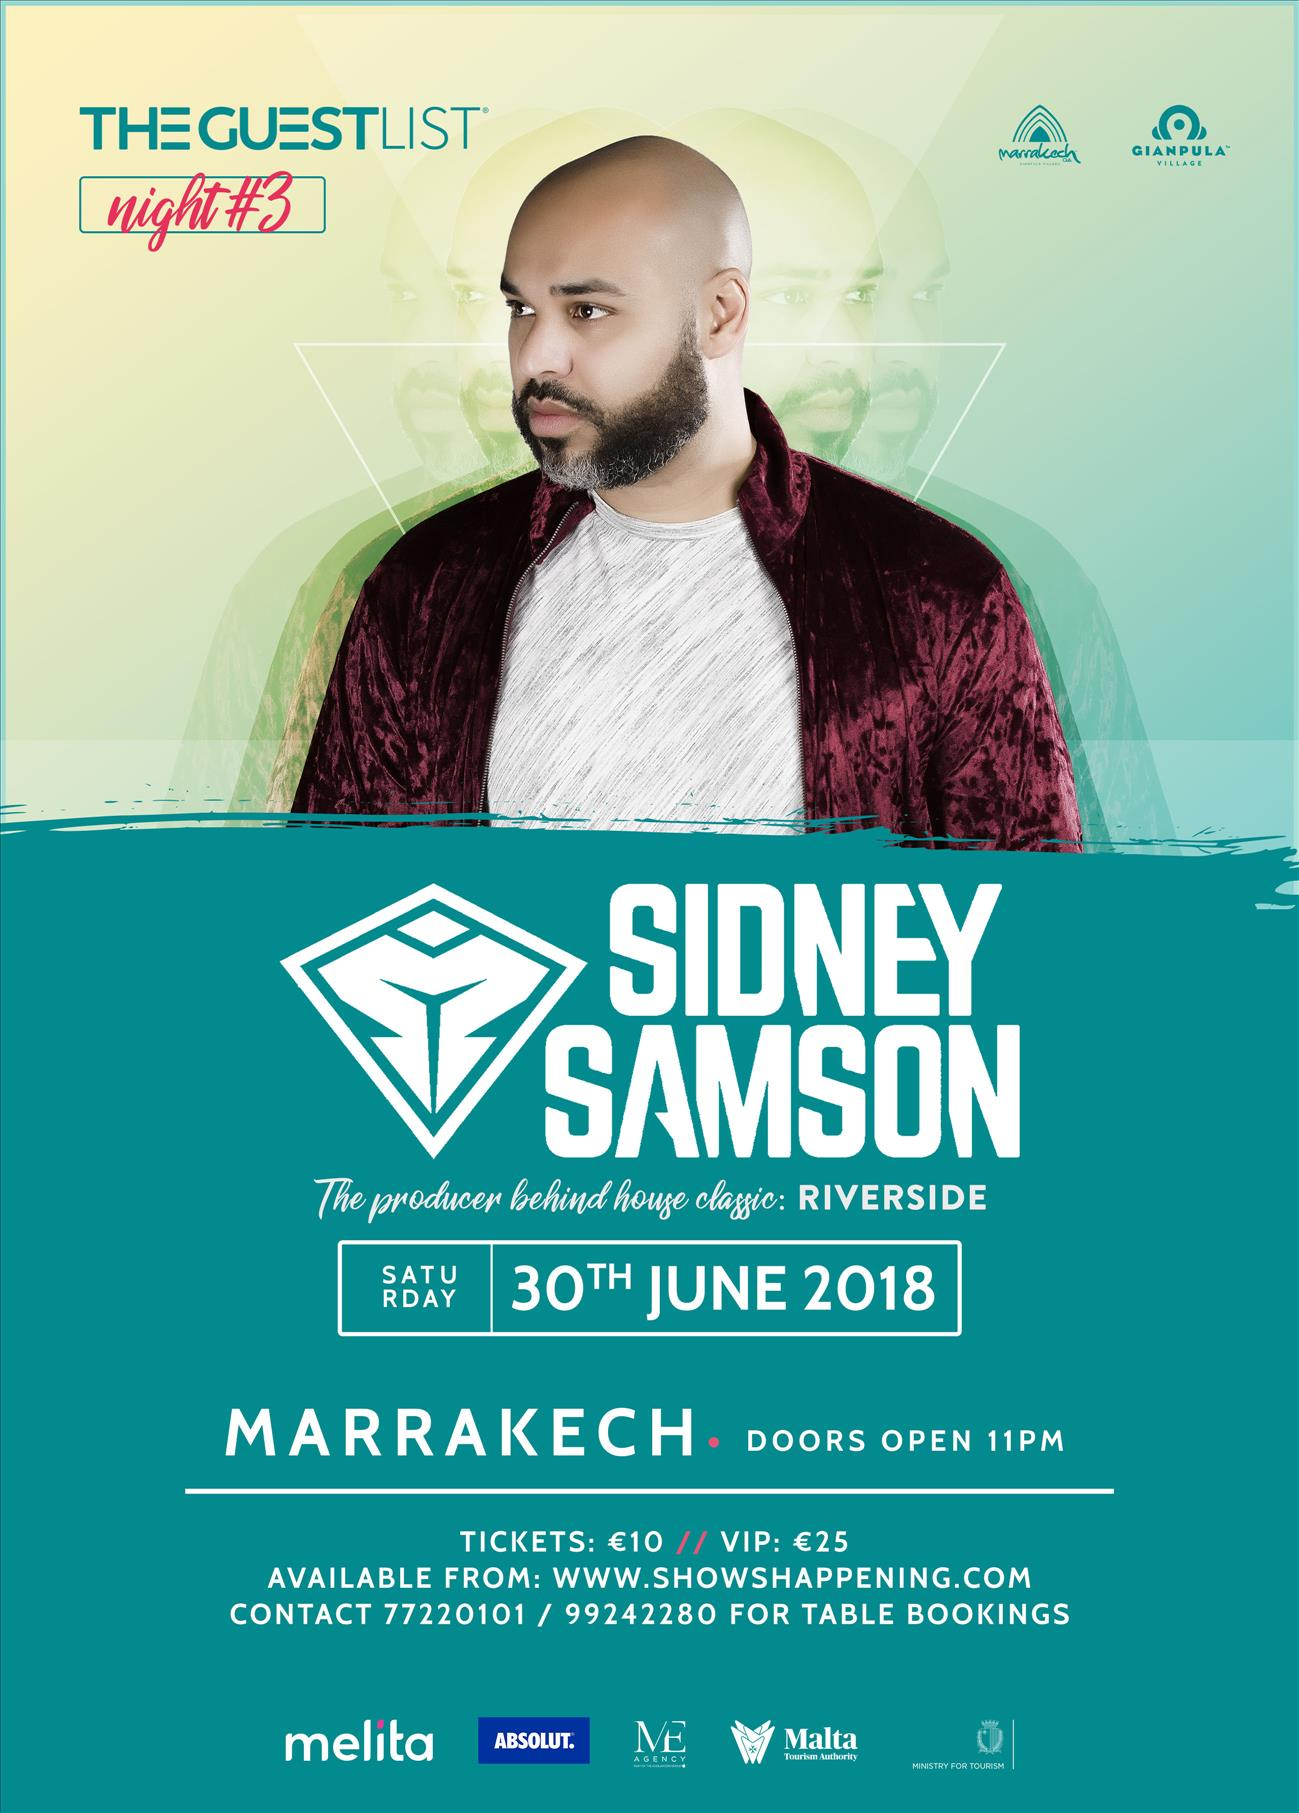 The GuestList Presents SIDNEY SAMSON (30/6/18) flyer